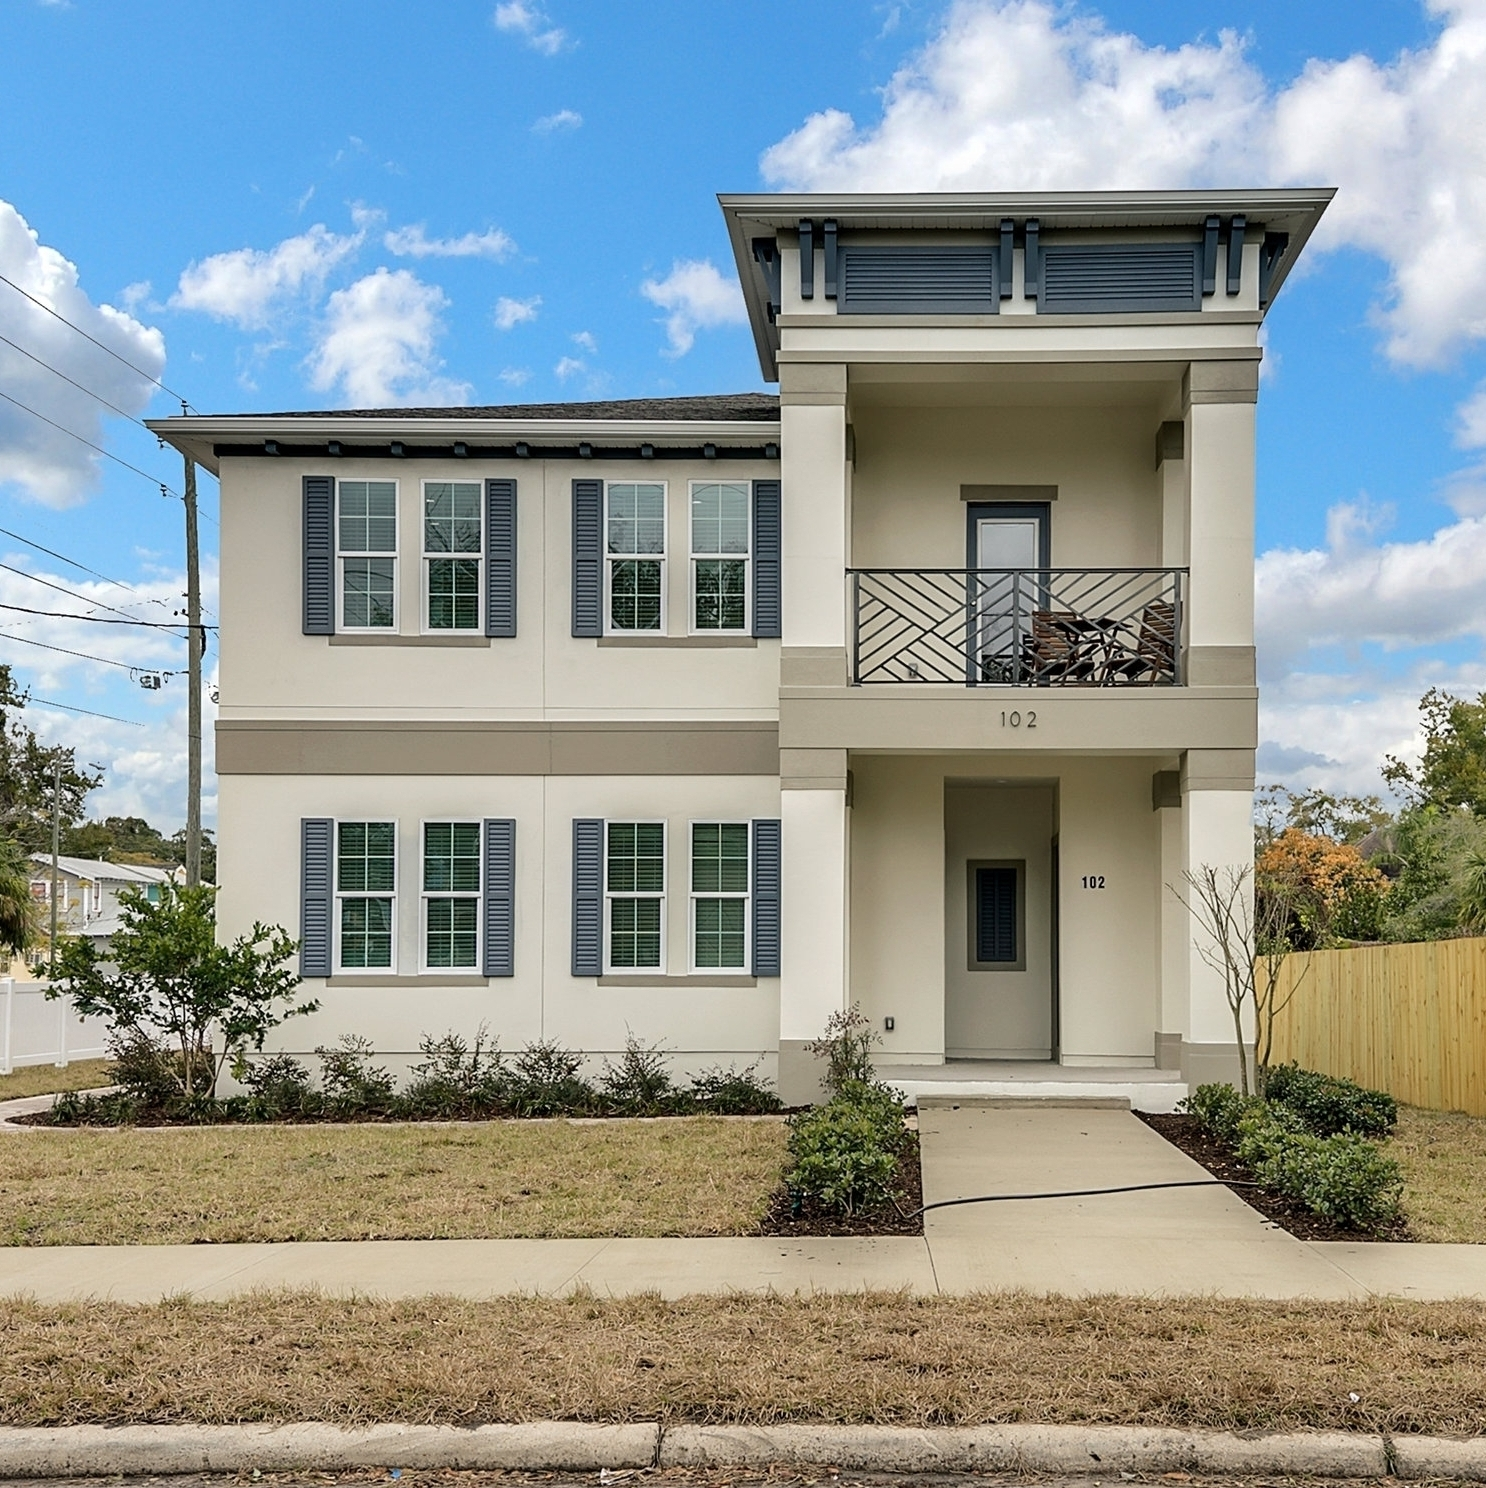 102 Euclid Ave, Unit B, Tampa, FL 33602  01  Exterior Front 1 - 1.jpg